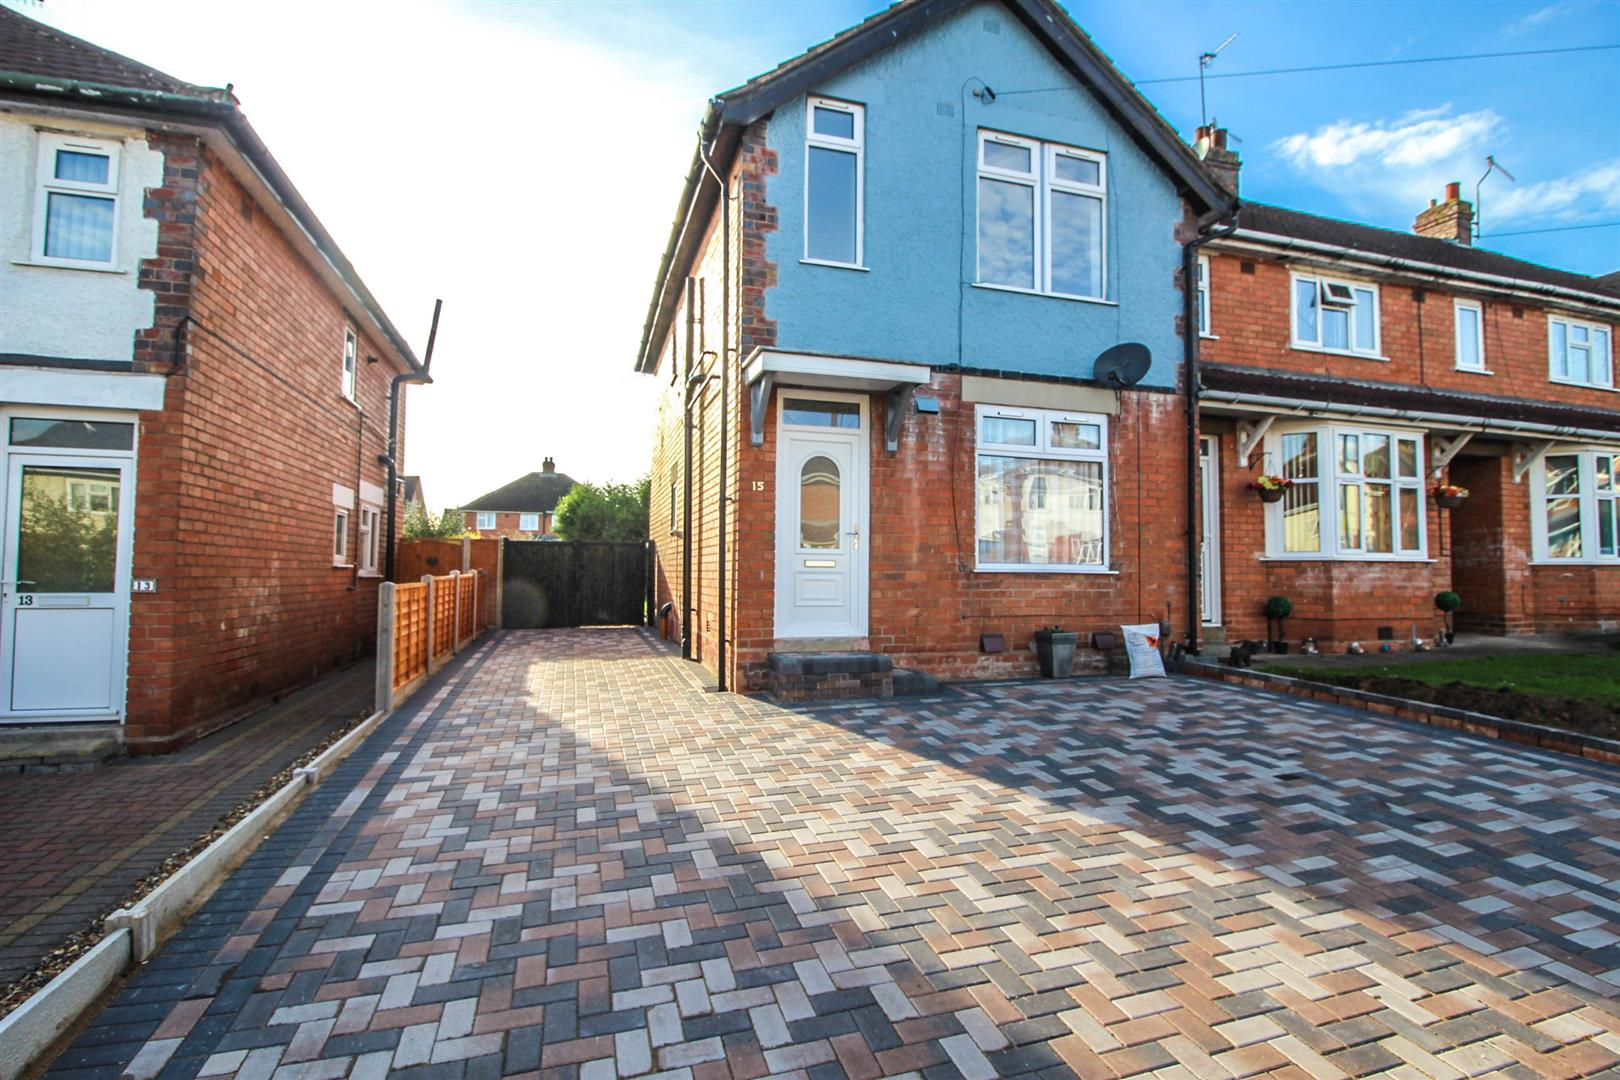 3 Bedrooms End Of Terrace House for sale in Hazel Road, Redditch